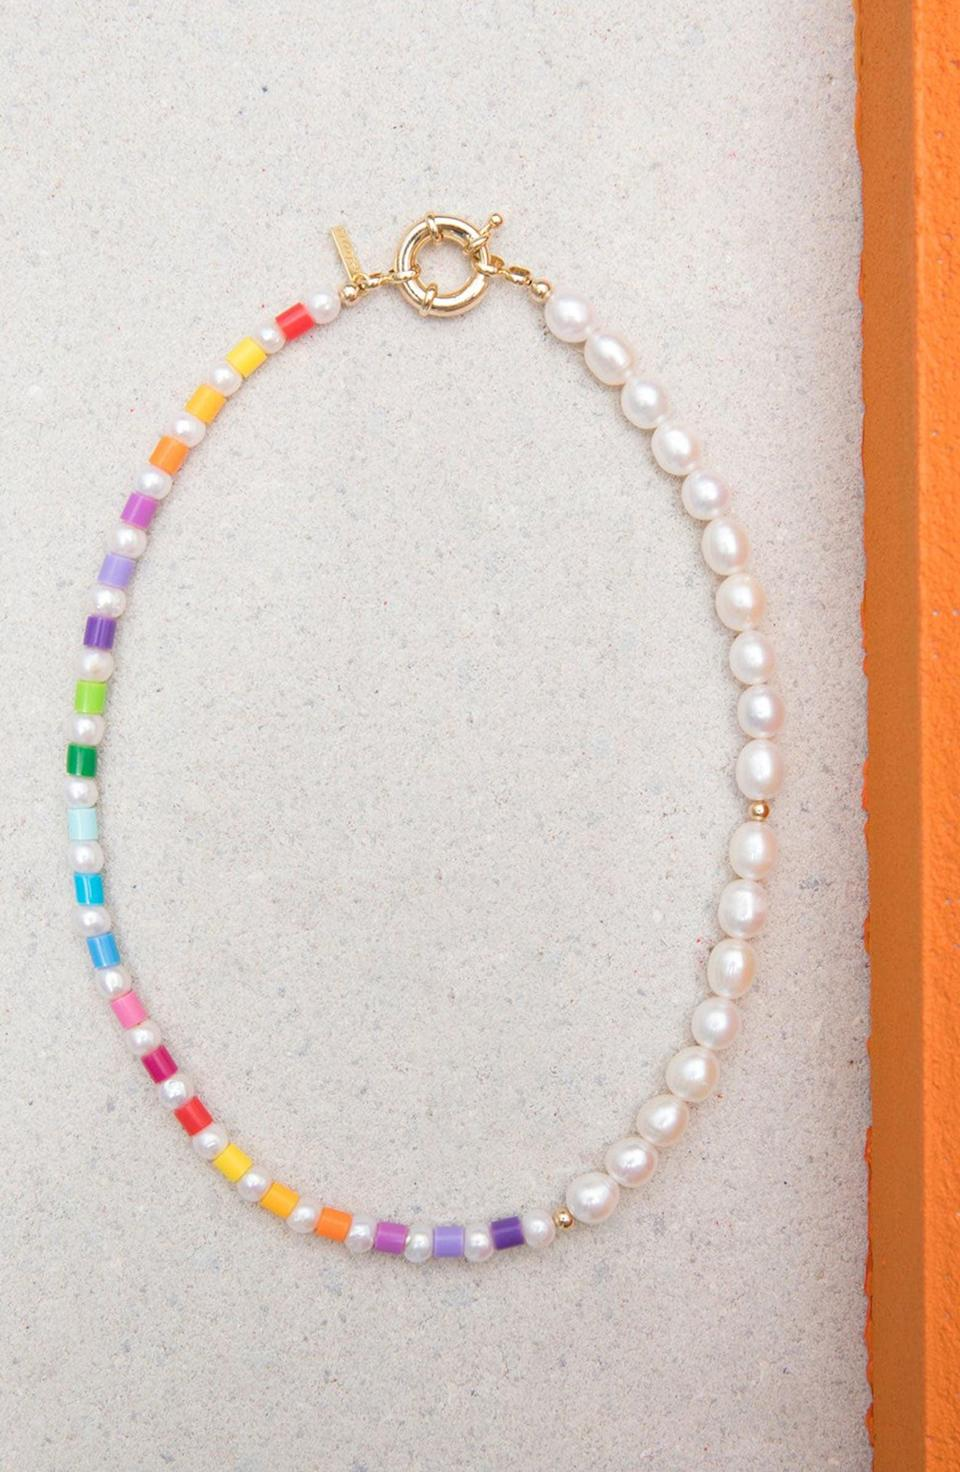 <p>Get them in on the colorful, enamel jewelry trend with the <span>Éliou Thasos Bead &amp; Baroque Pearl Necklace</span> ($160). The mix of rainbow beads and pearls is so fun.</p>